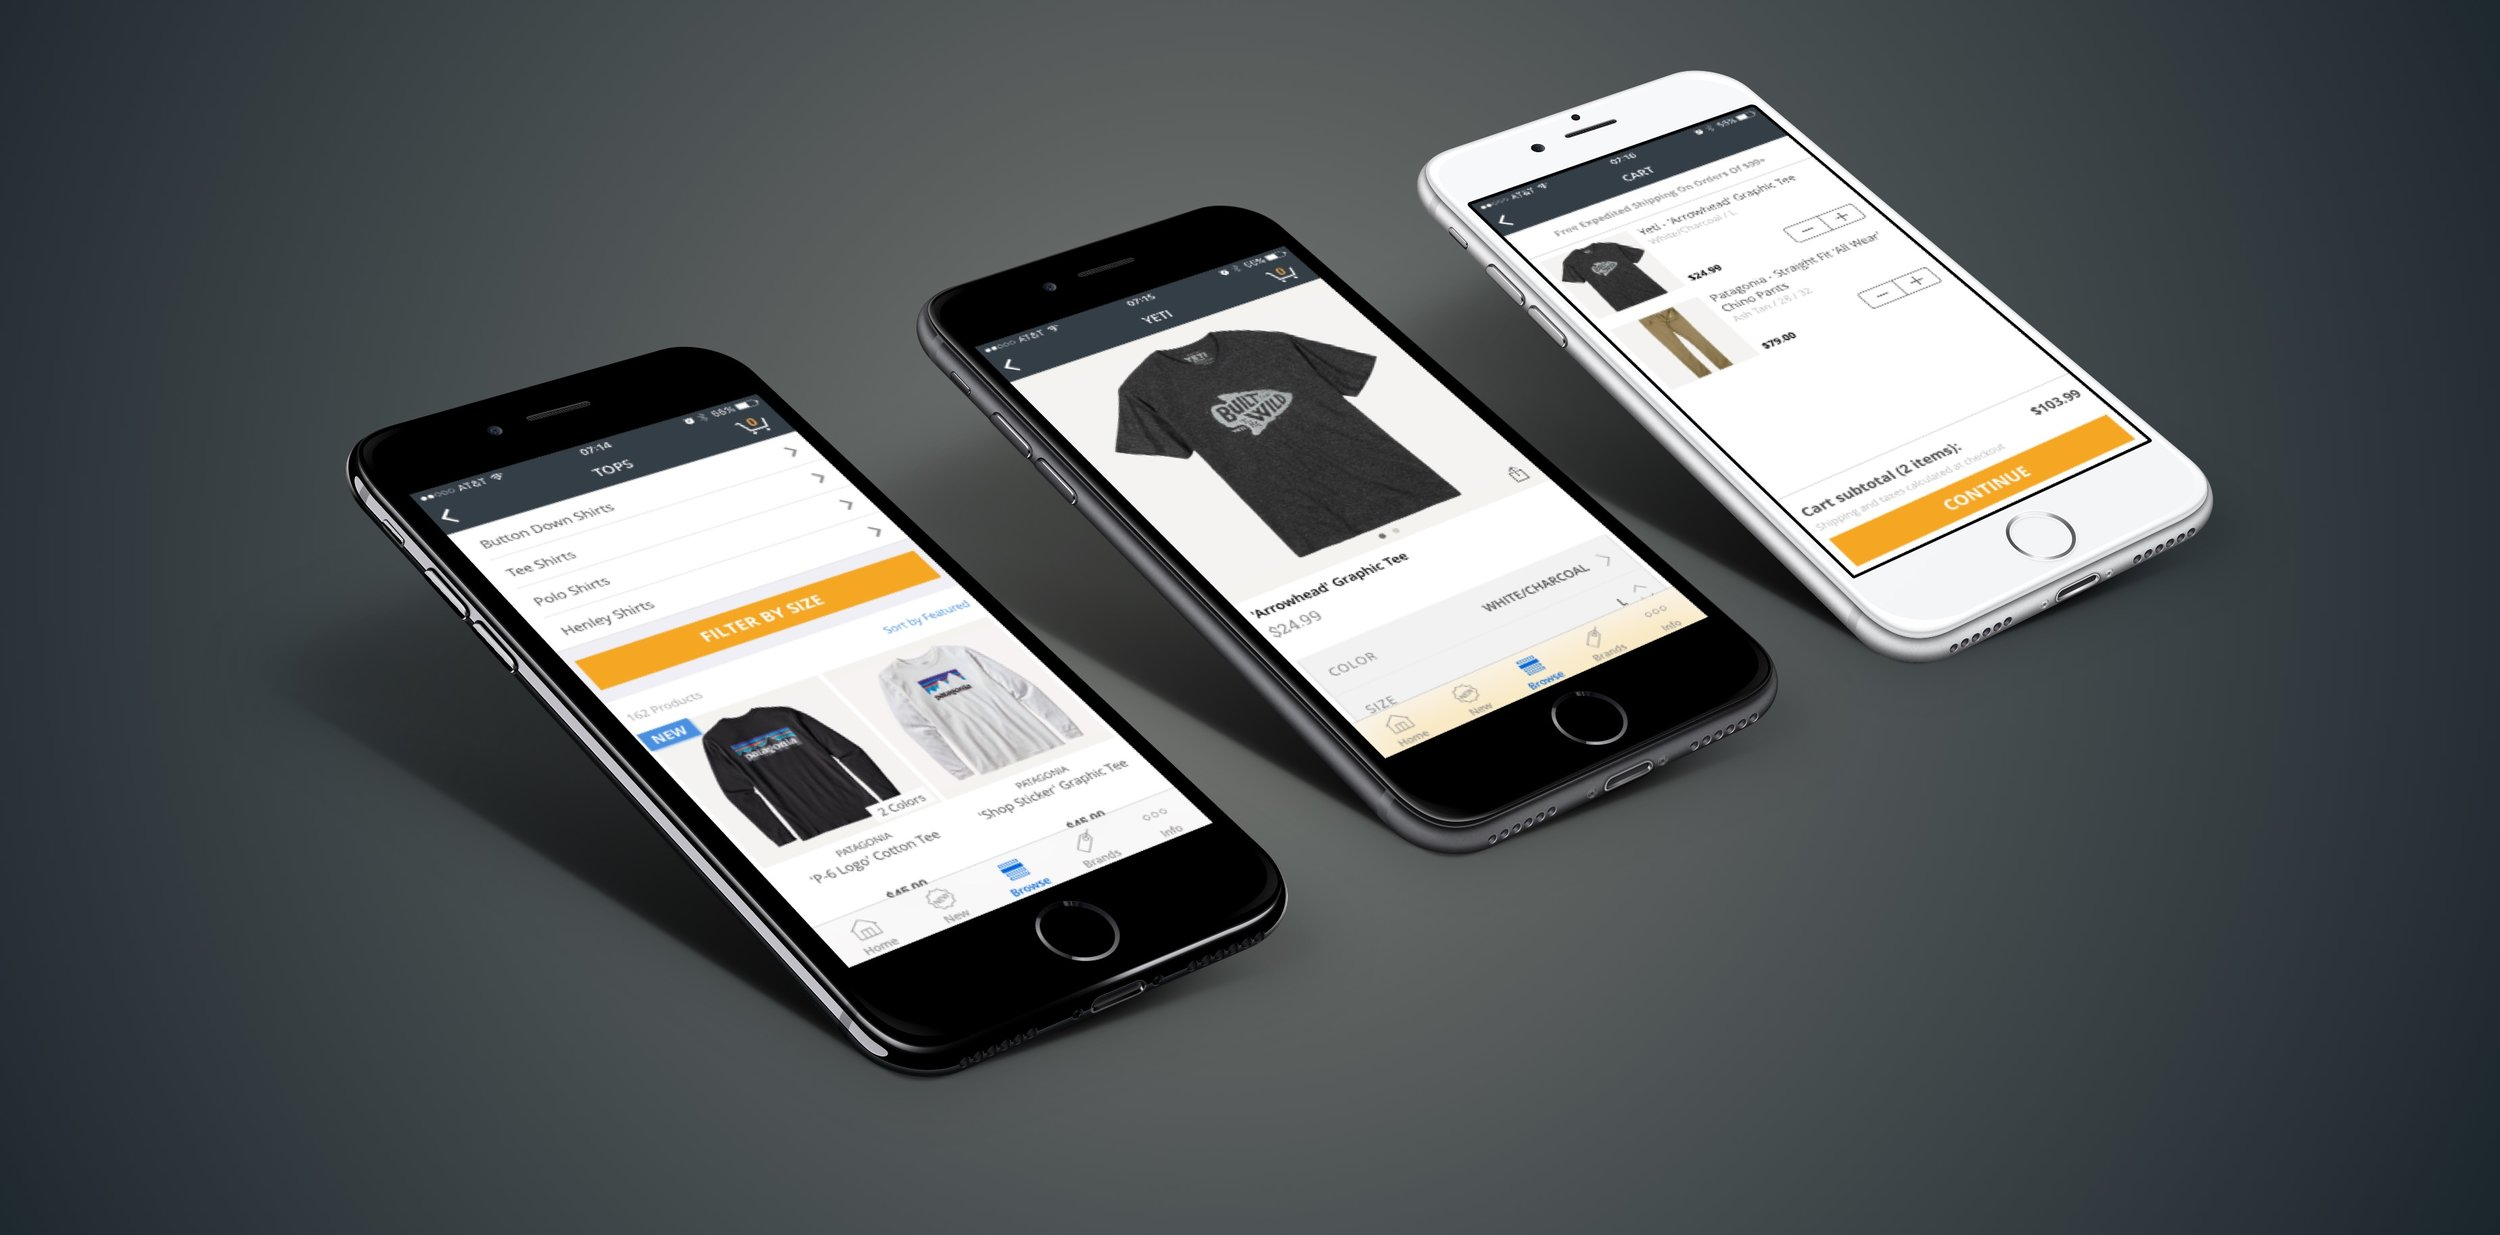 Man Outfitters iOS app on iPhone